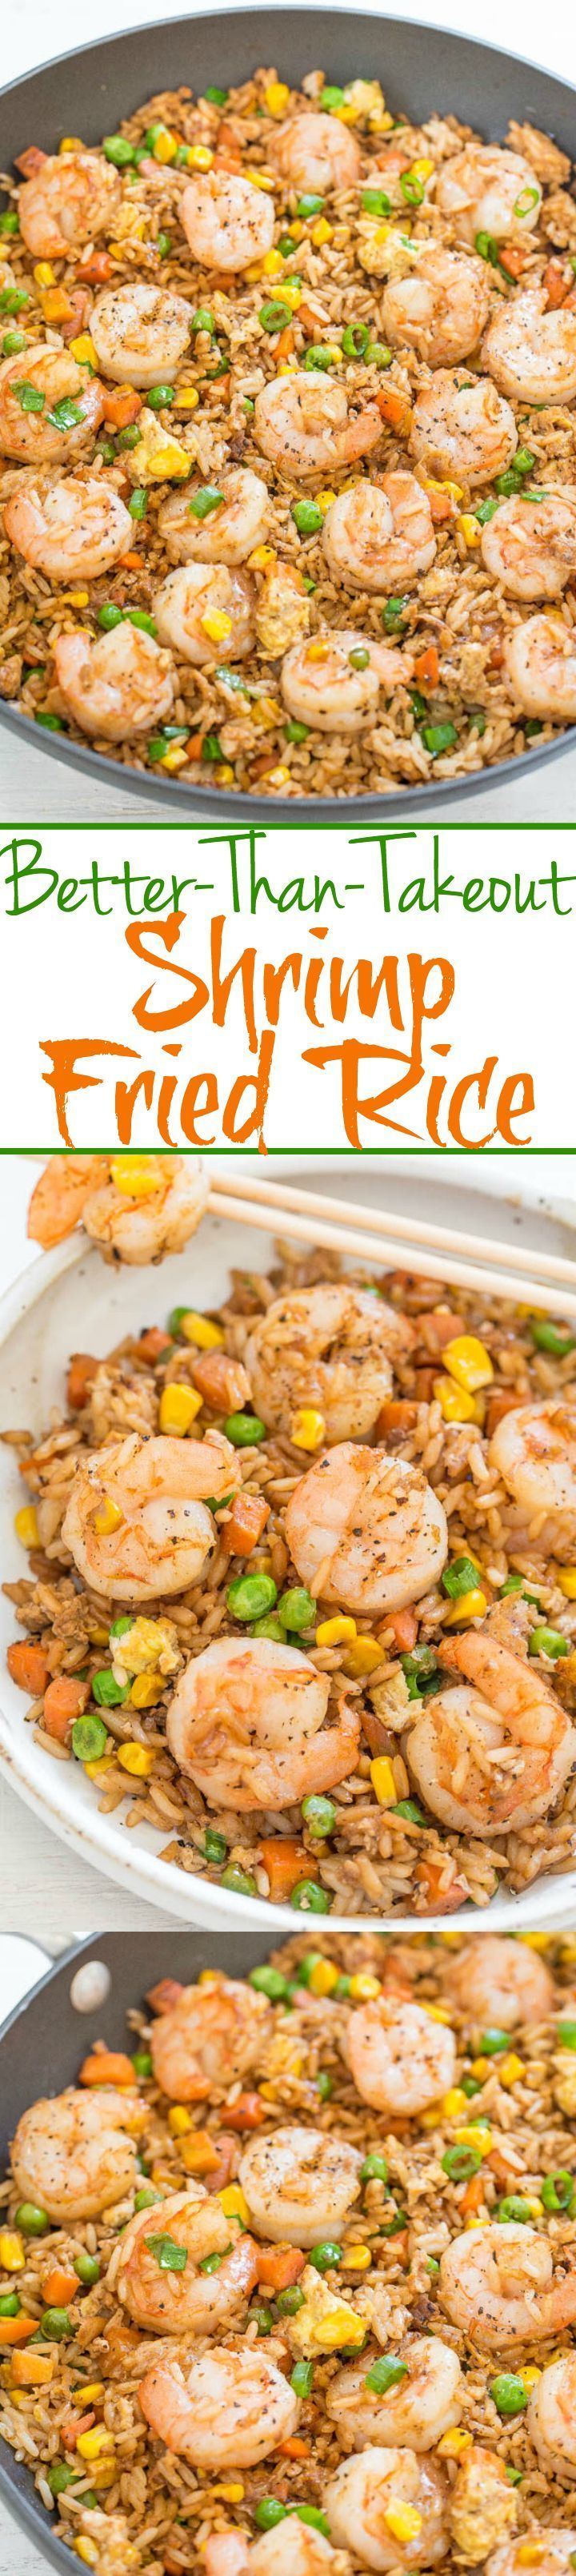 Better-Than-Takeout Shrimp Fried Rice Easy Better-Than-Takeout Shrimp Fried Rice - One-skillet, ready in 20 minutes, and you'll never takeout again!! Homemade tastes WAY BETTER!! Tons more flavor, not greasy, and loaded with tender shrimp!!Easy Better-Than-Takeout Shrimp Fried Rice - One-skillet, ready in 20 minutes, and you'll never takeout again!! H...